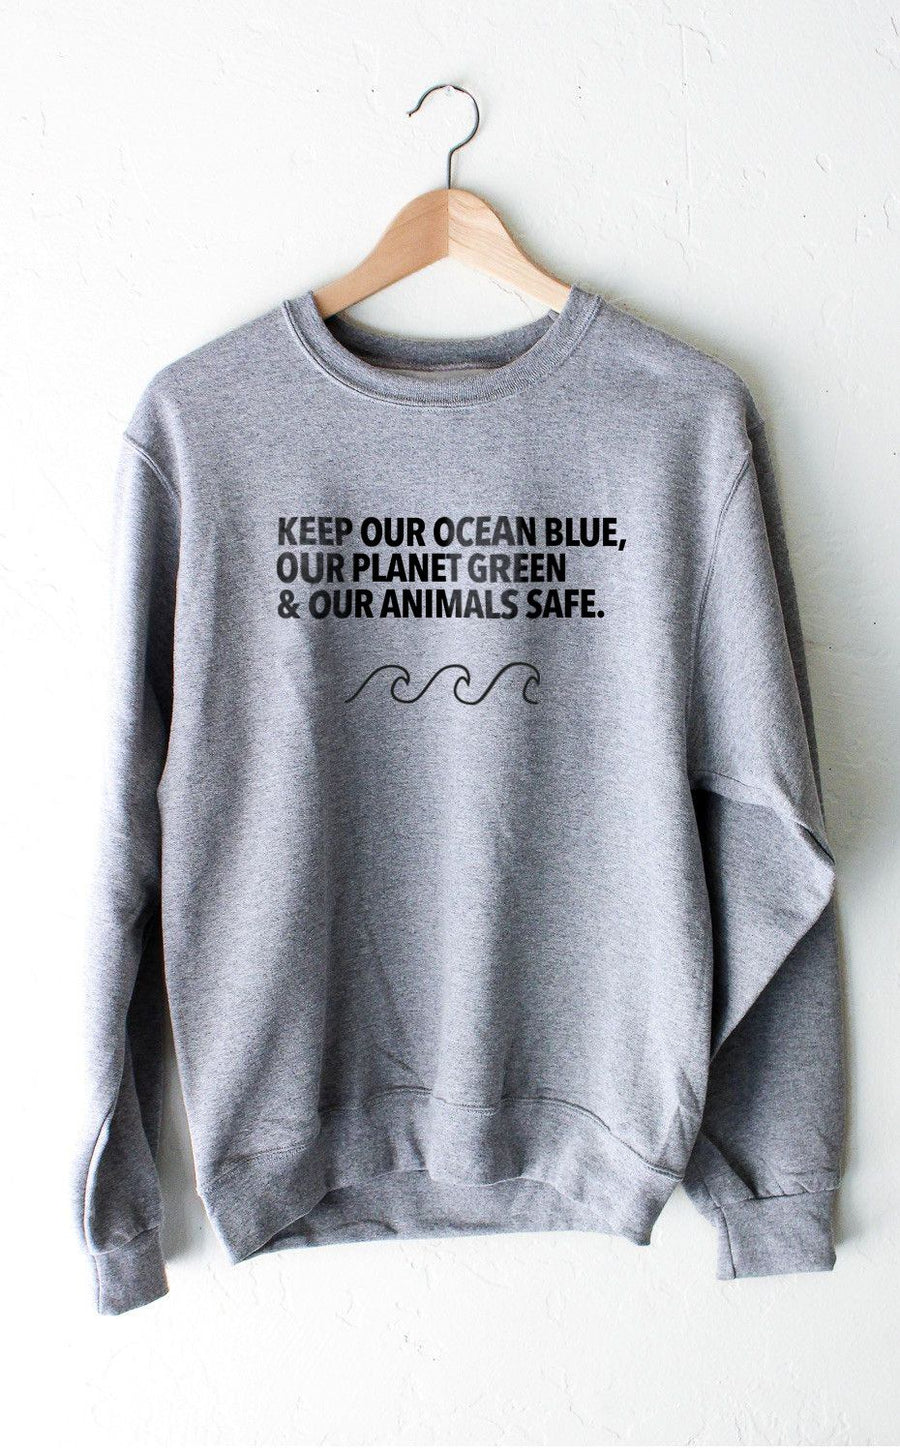 Sweatshirt - Keep Our Ocean Blue, Our Planet Green & Our Animals Safe - Unisex Crewneck Sweatshirt